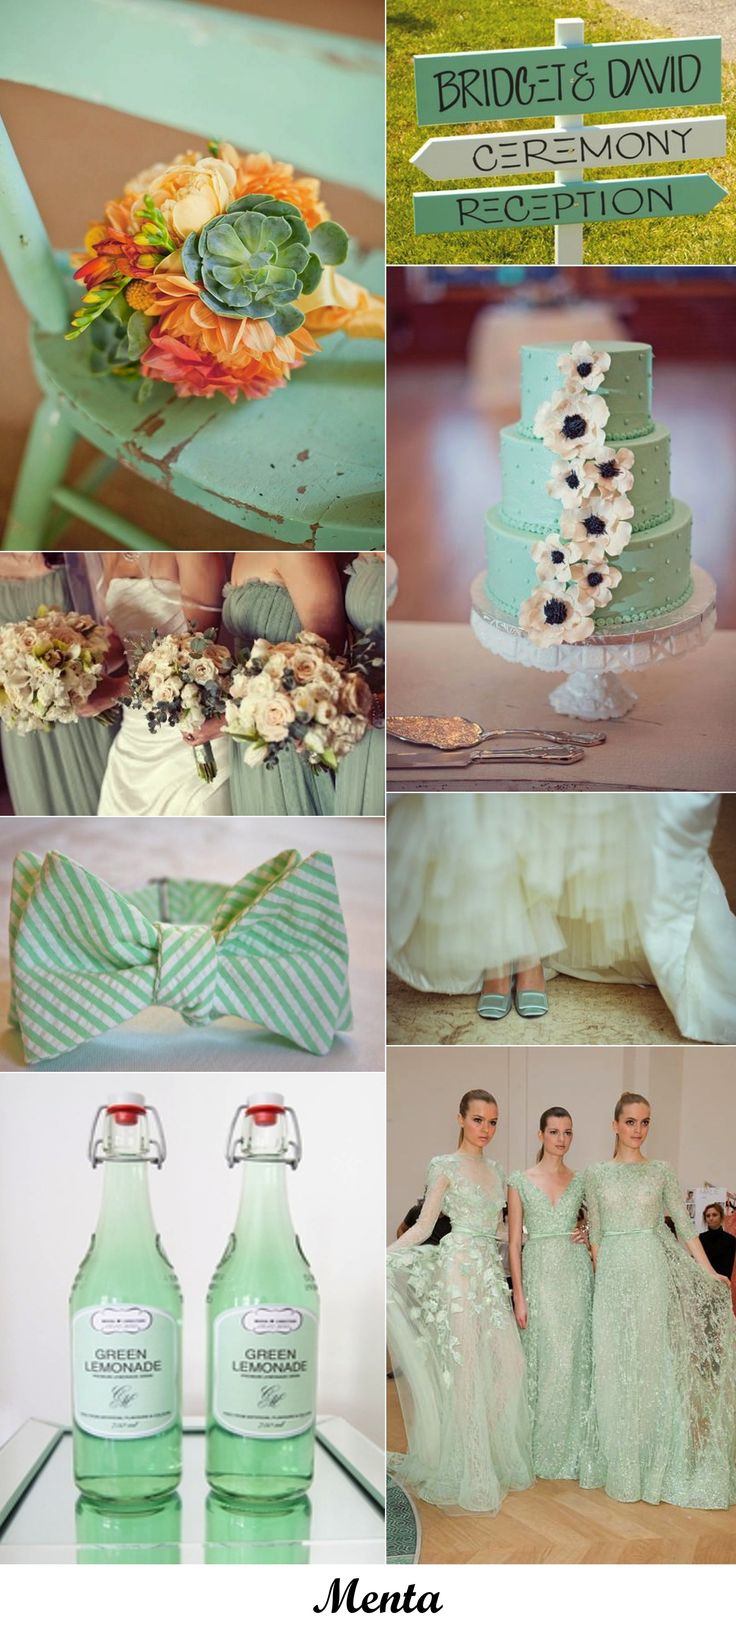 I really like the green. Perfect for a spring or summer wedding.